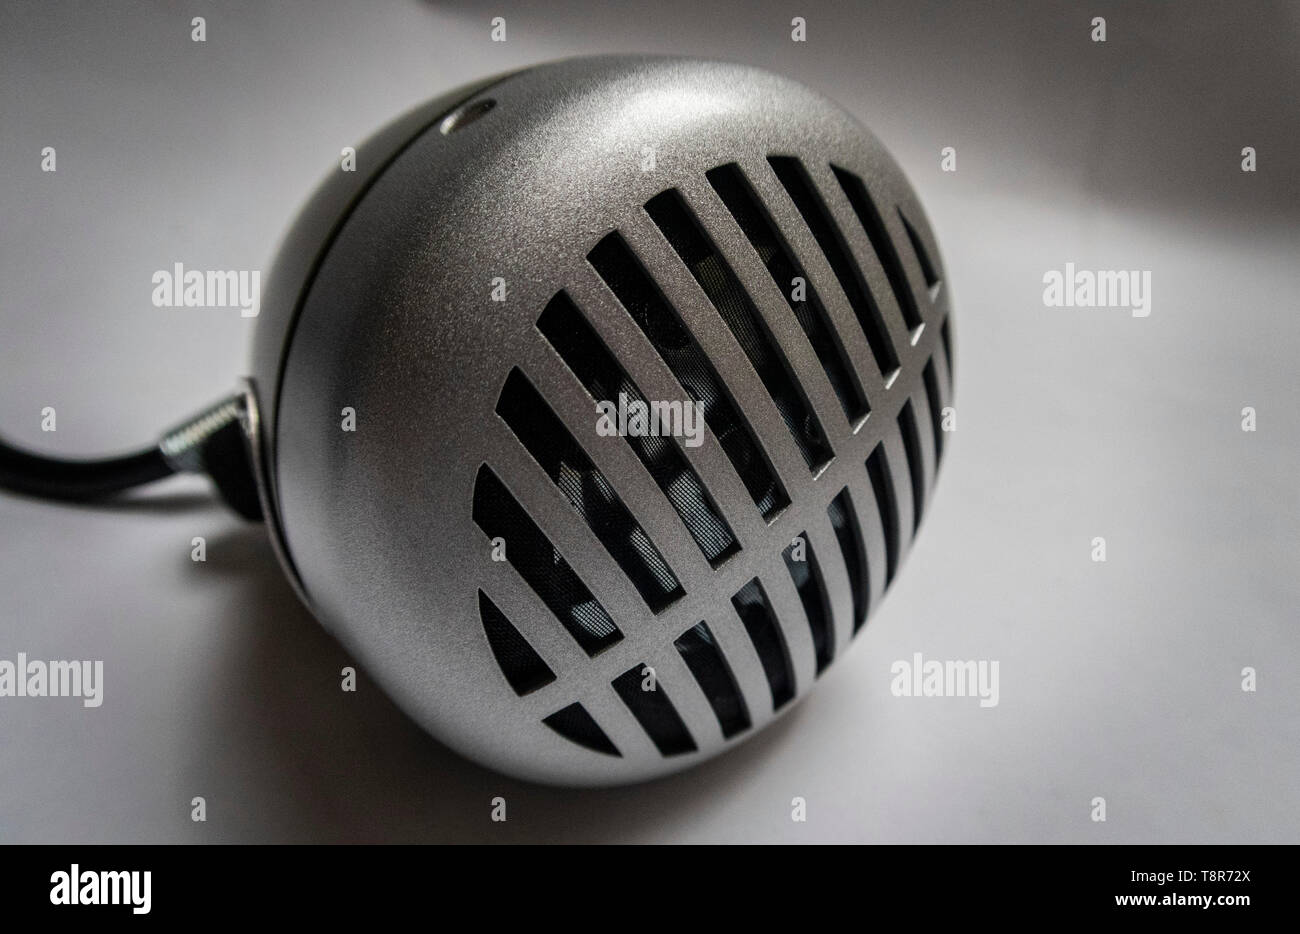 Shure Green Bullet 520 DX harmonica microphone, Modern classic dynamic omnidirectional mic. - Stock Image